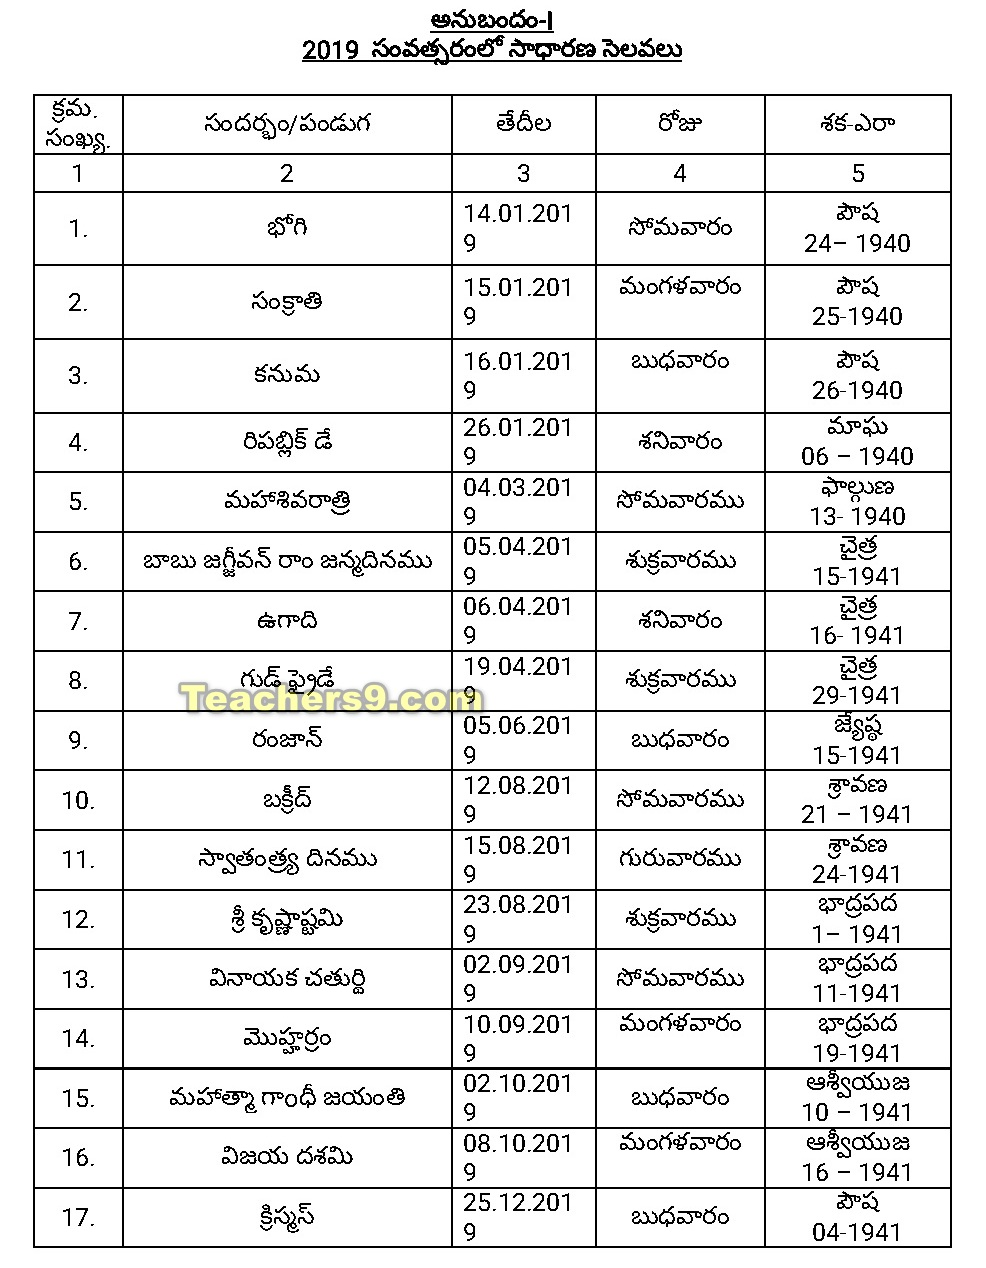 General Holidays for the year 2019 in Andhra Pradesh